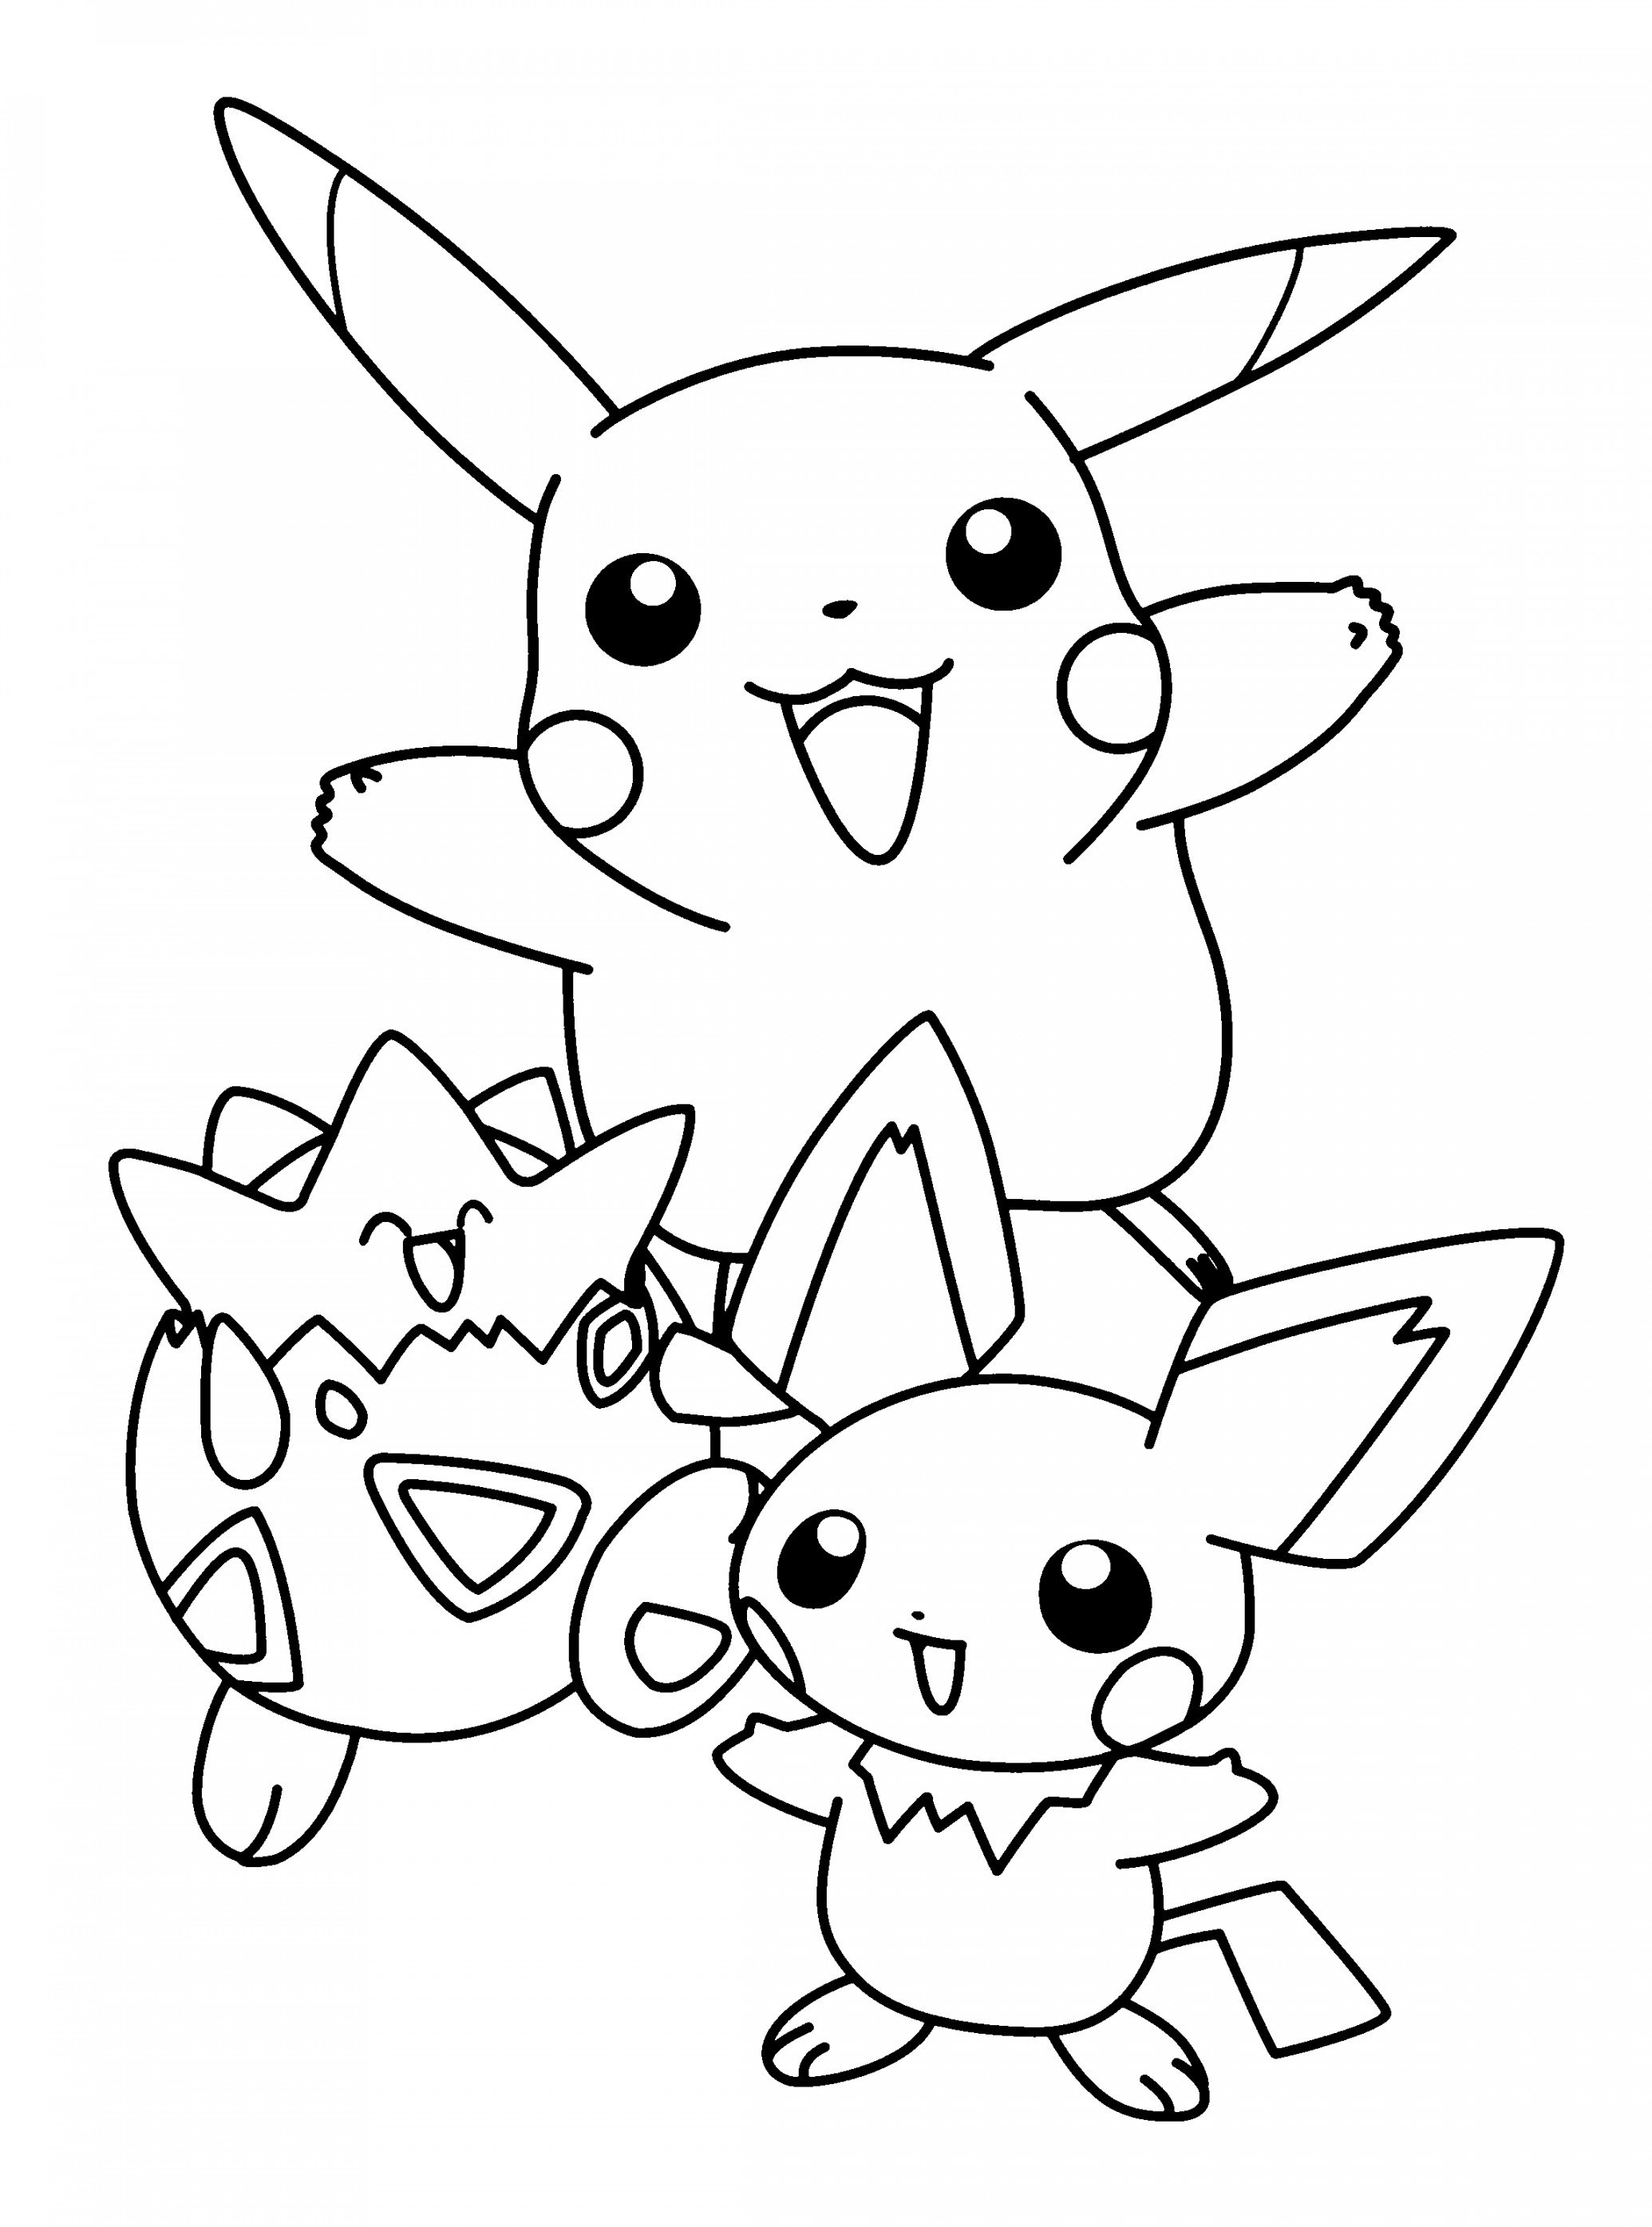 coloring pictures pikachu printable pikachu coloring pages for kids cool2bkids pikachu coloring pictures